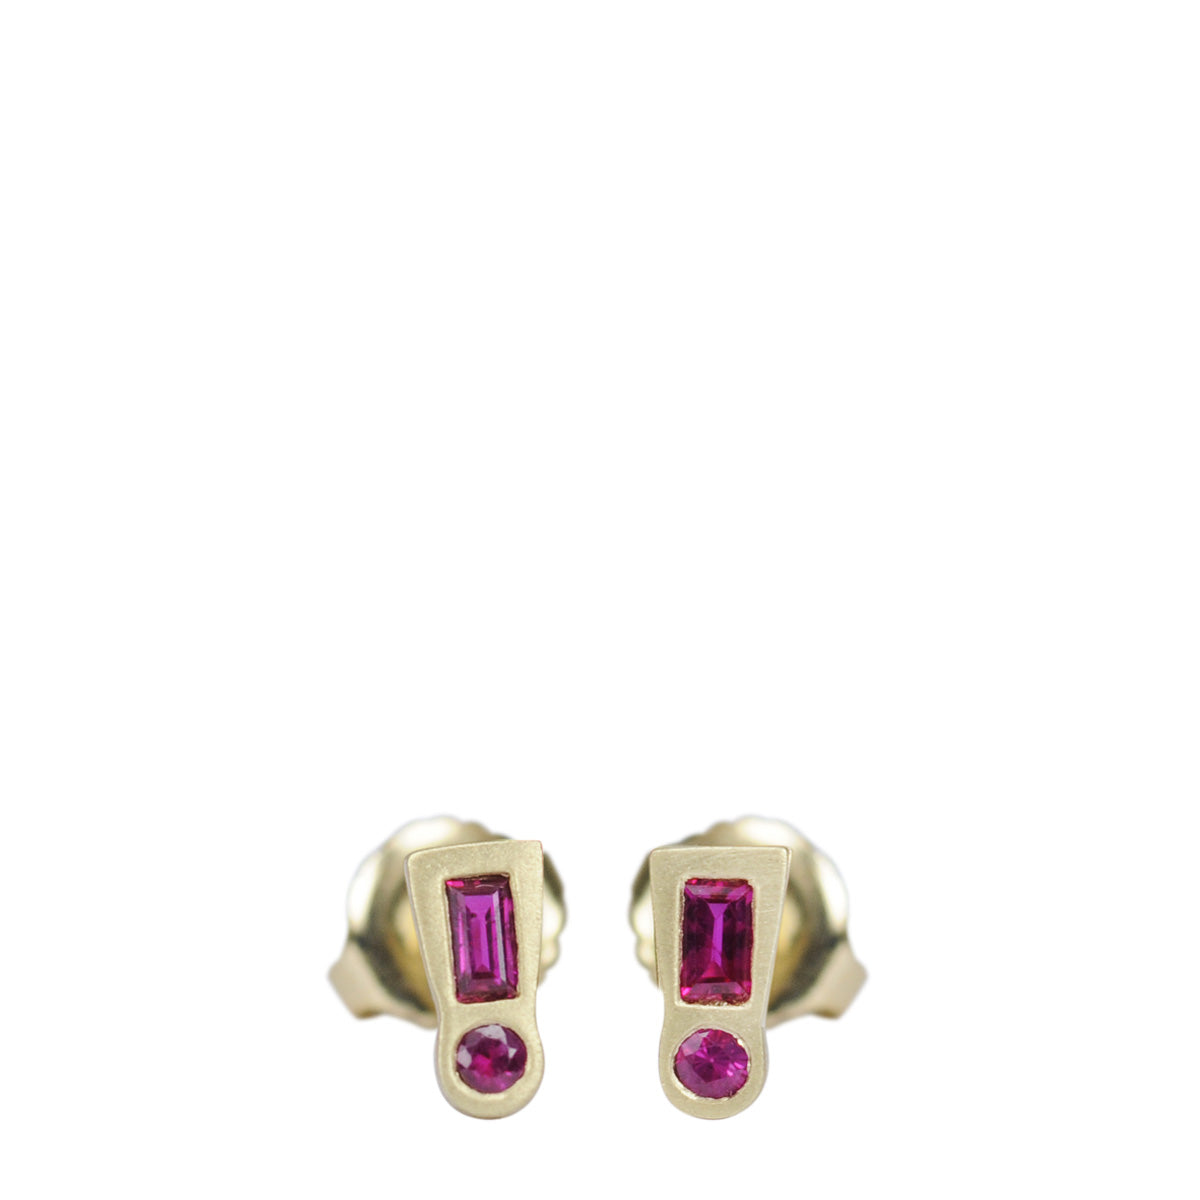 18K Gold Ruby Exclamation Point Stud Earrings